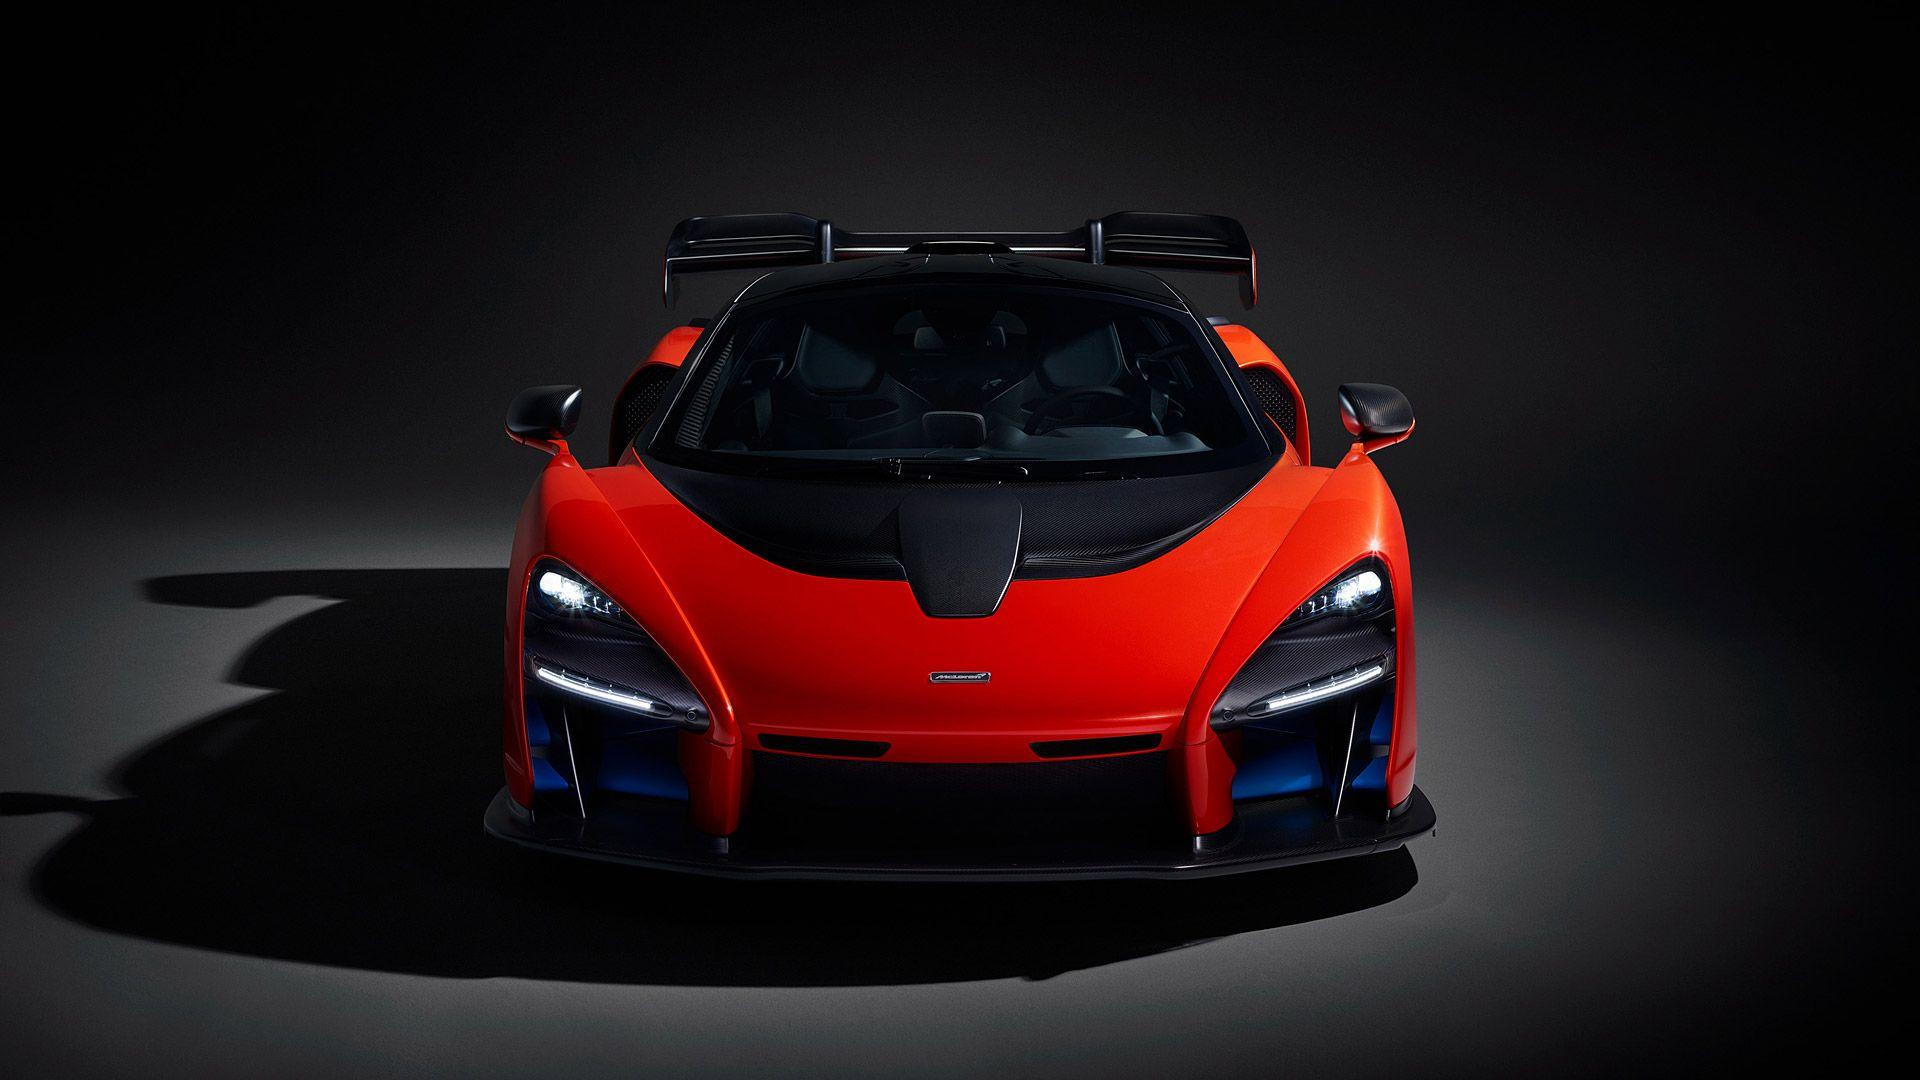 2019 McLaren Senna Wallpapers & HD Images - WSupercars